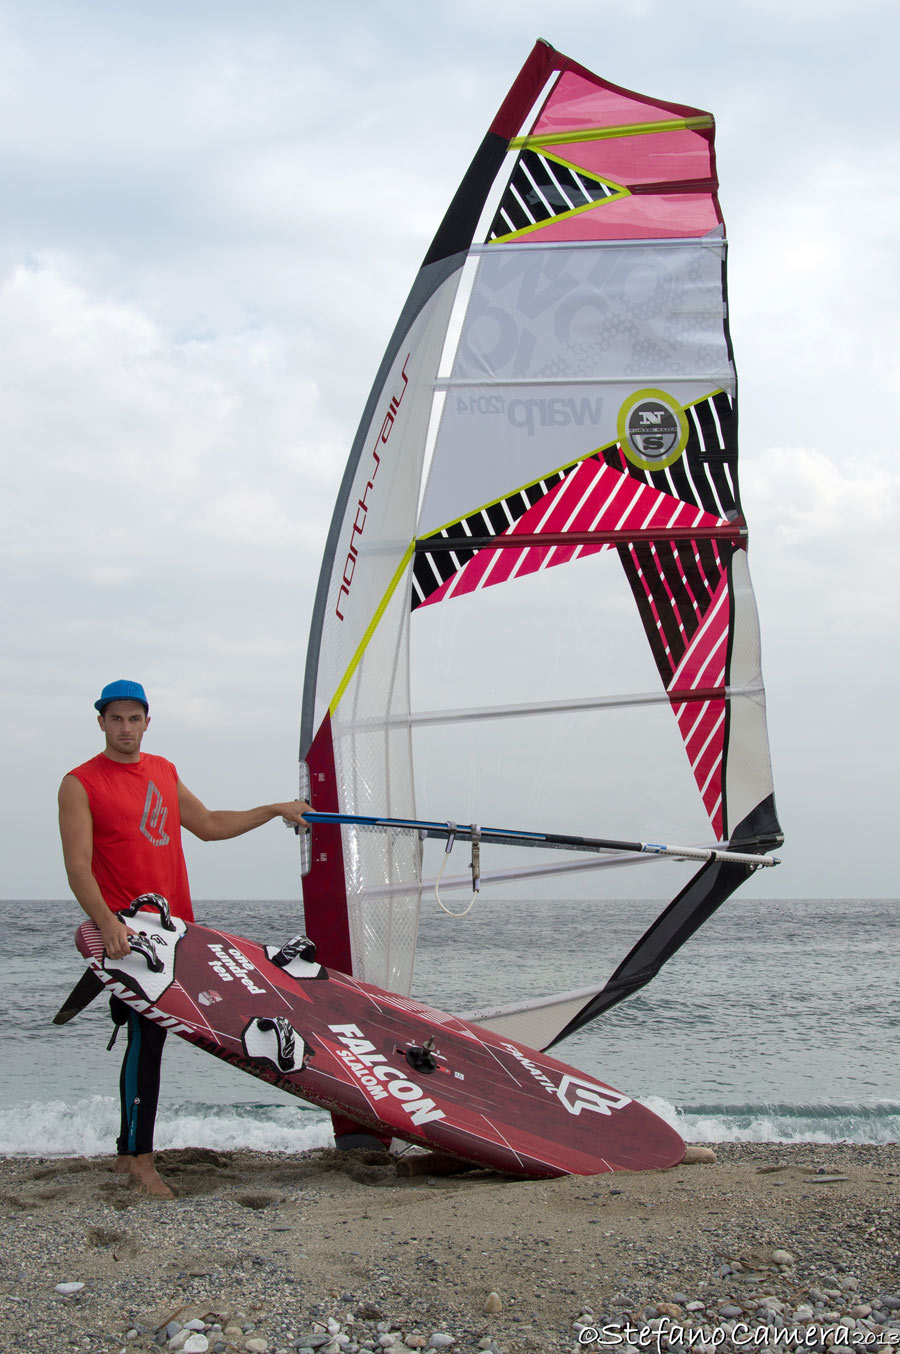 Matteo with his new gear (Pic: Stefano Camera)